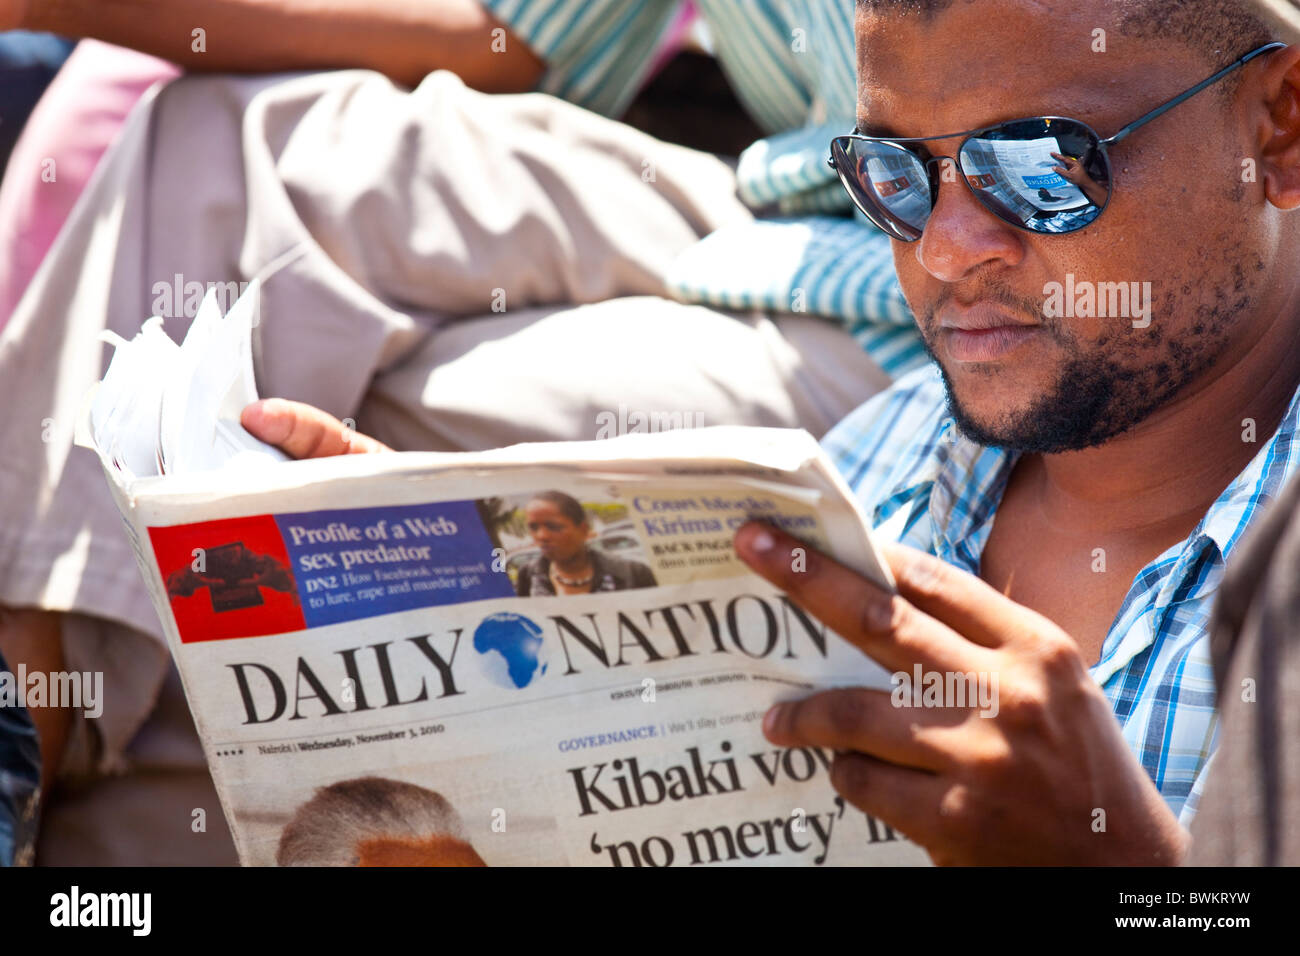 Man reading the Daily Nation newspaper, Nairobi, Kenya - Stock Image